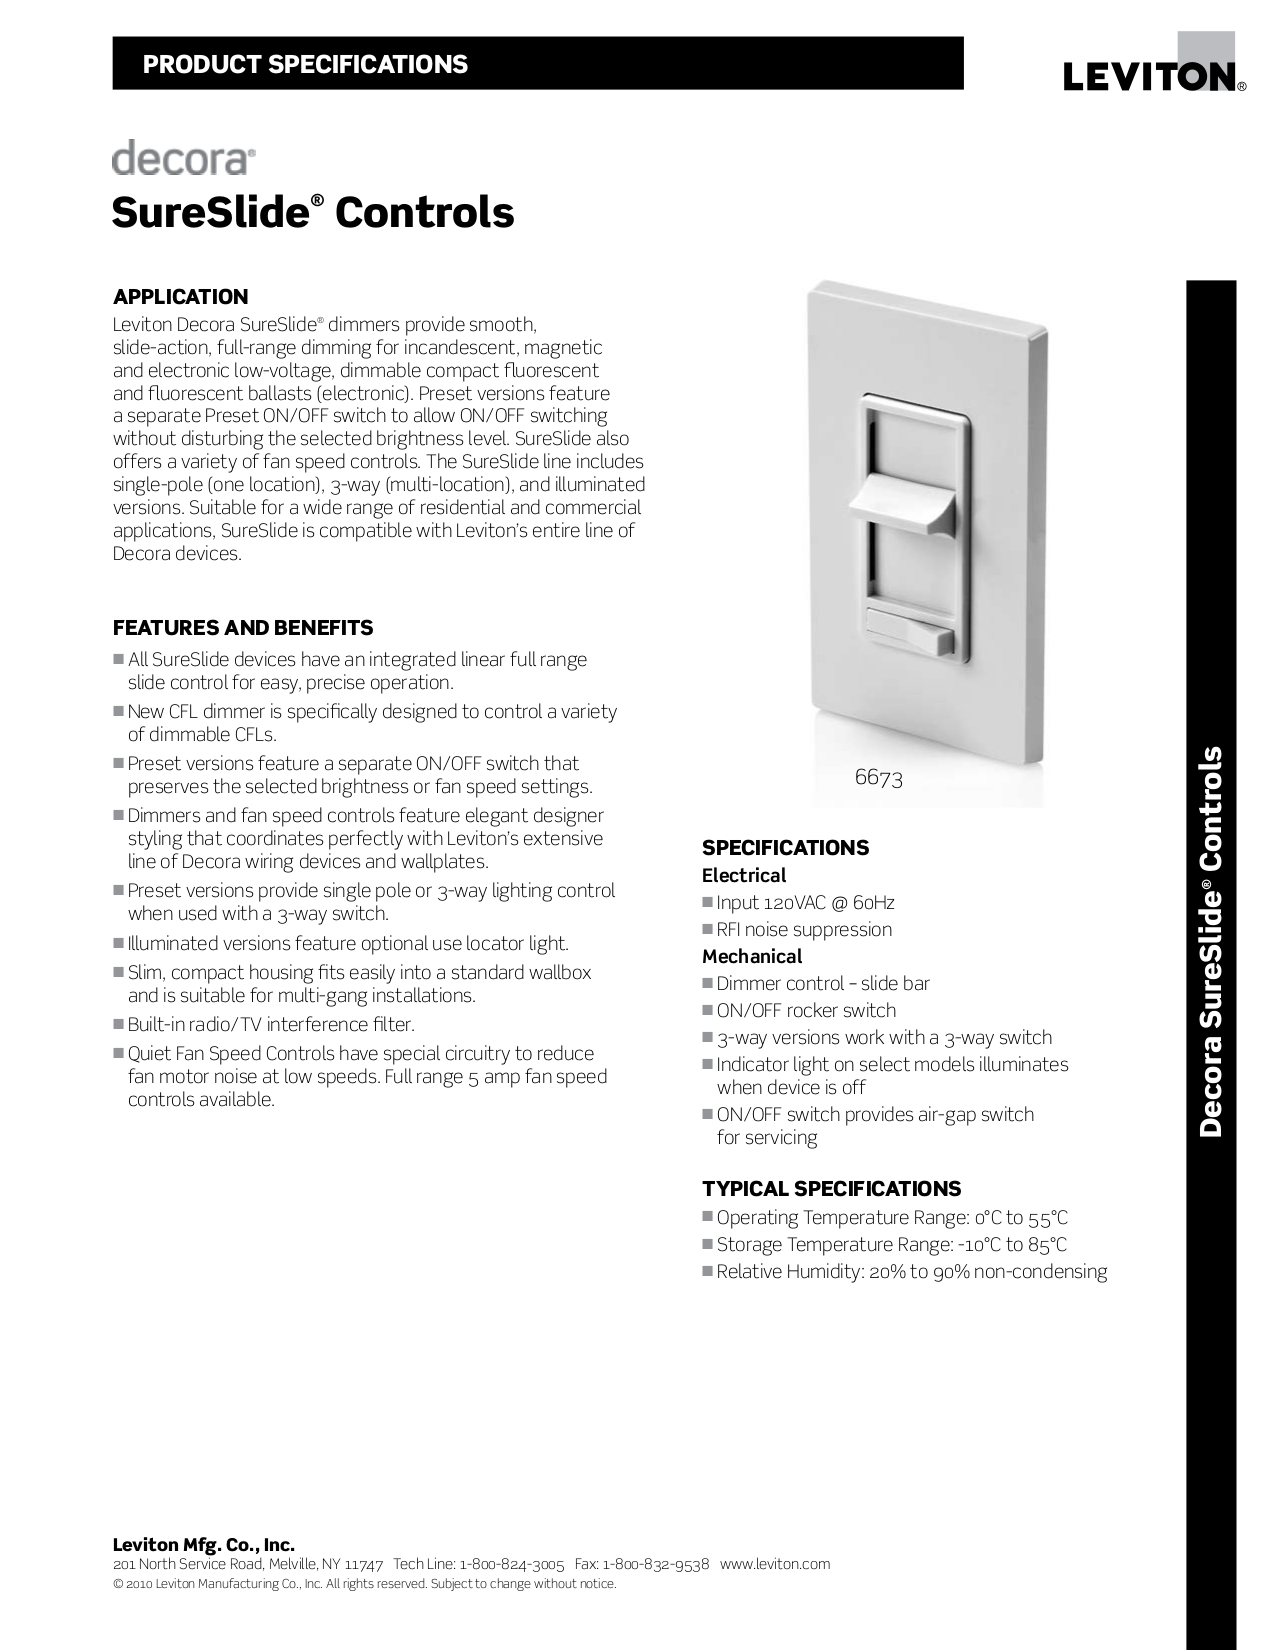 pdf for leviton other sureslide 6631 l dimmers manual